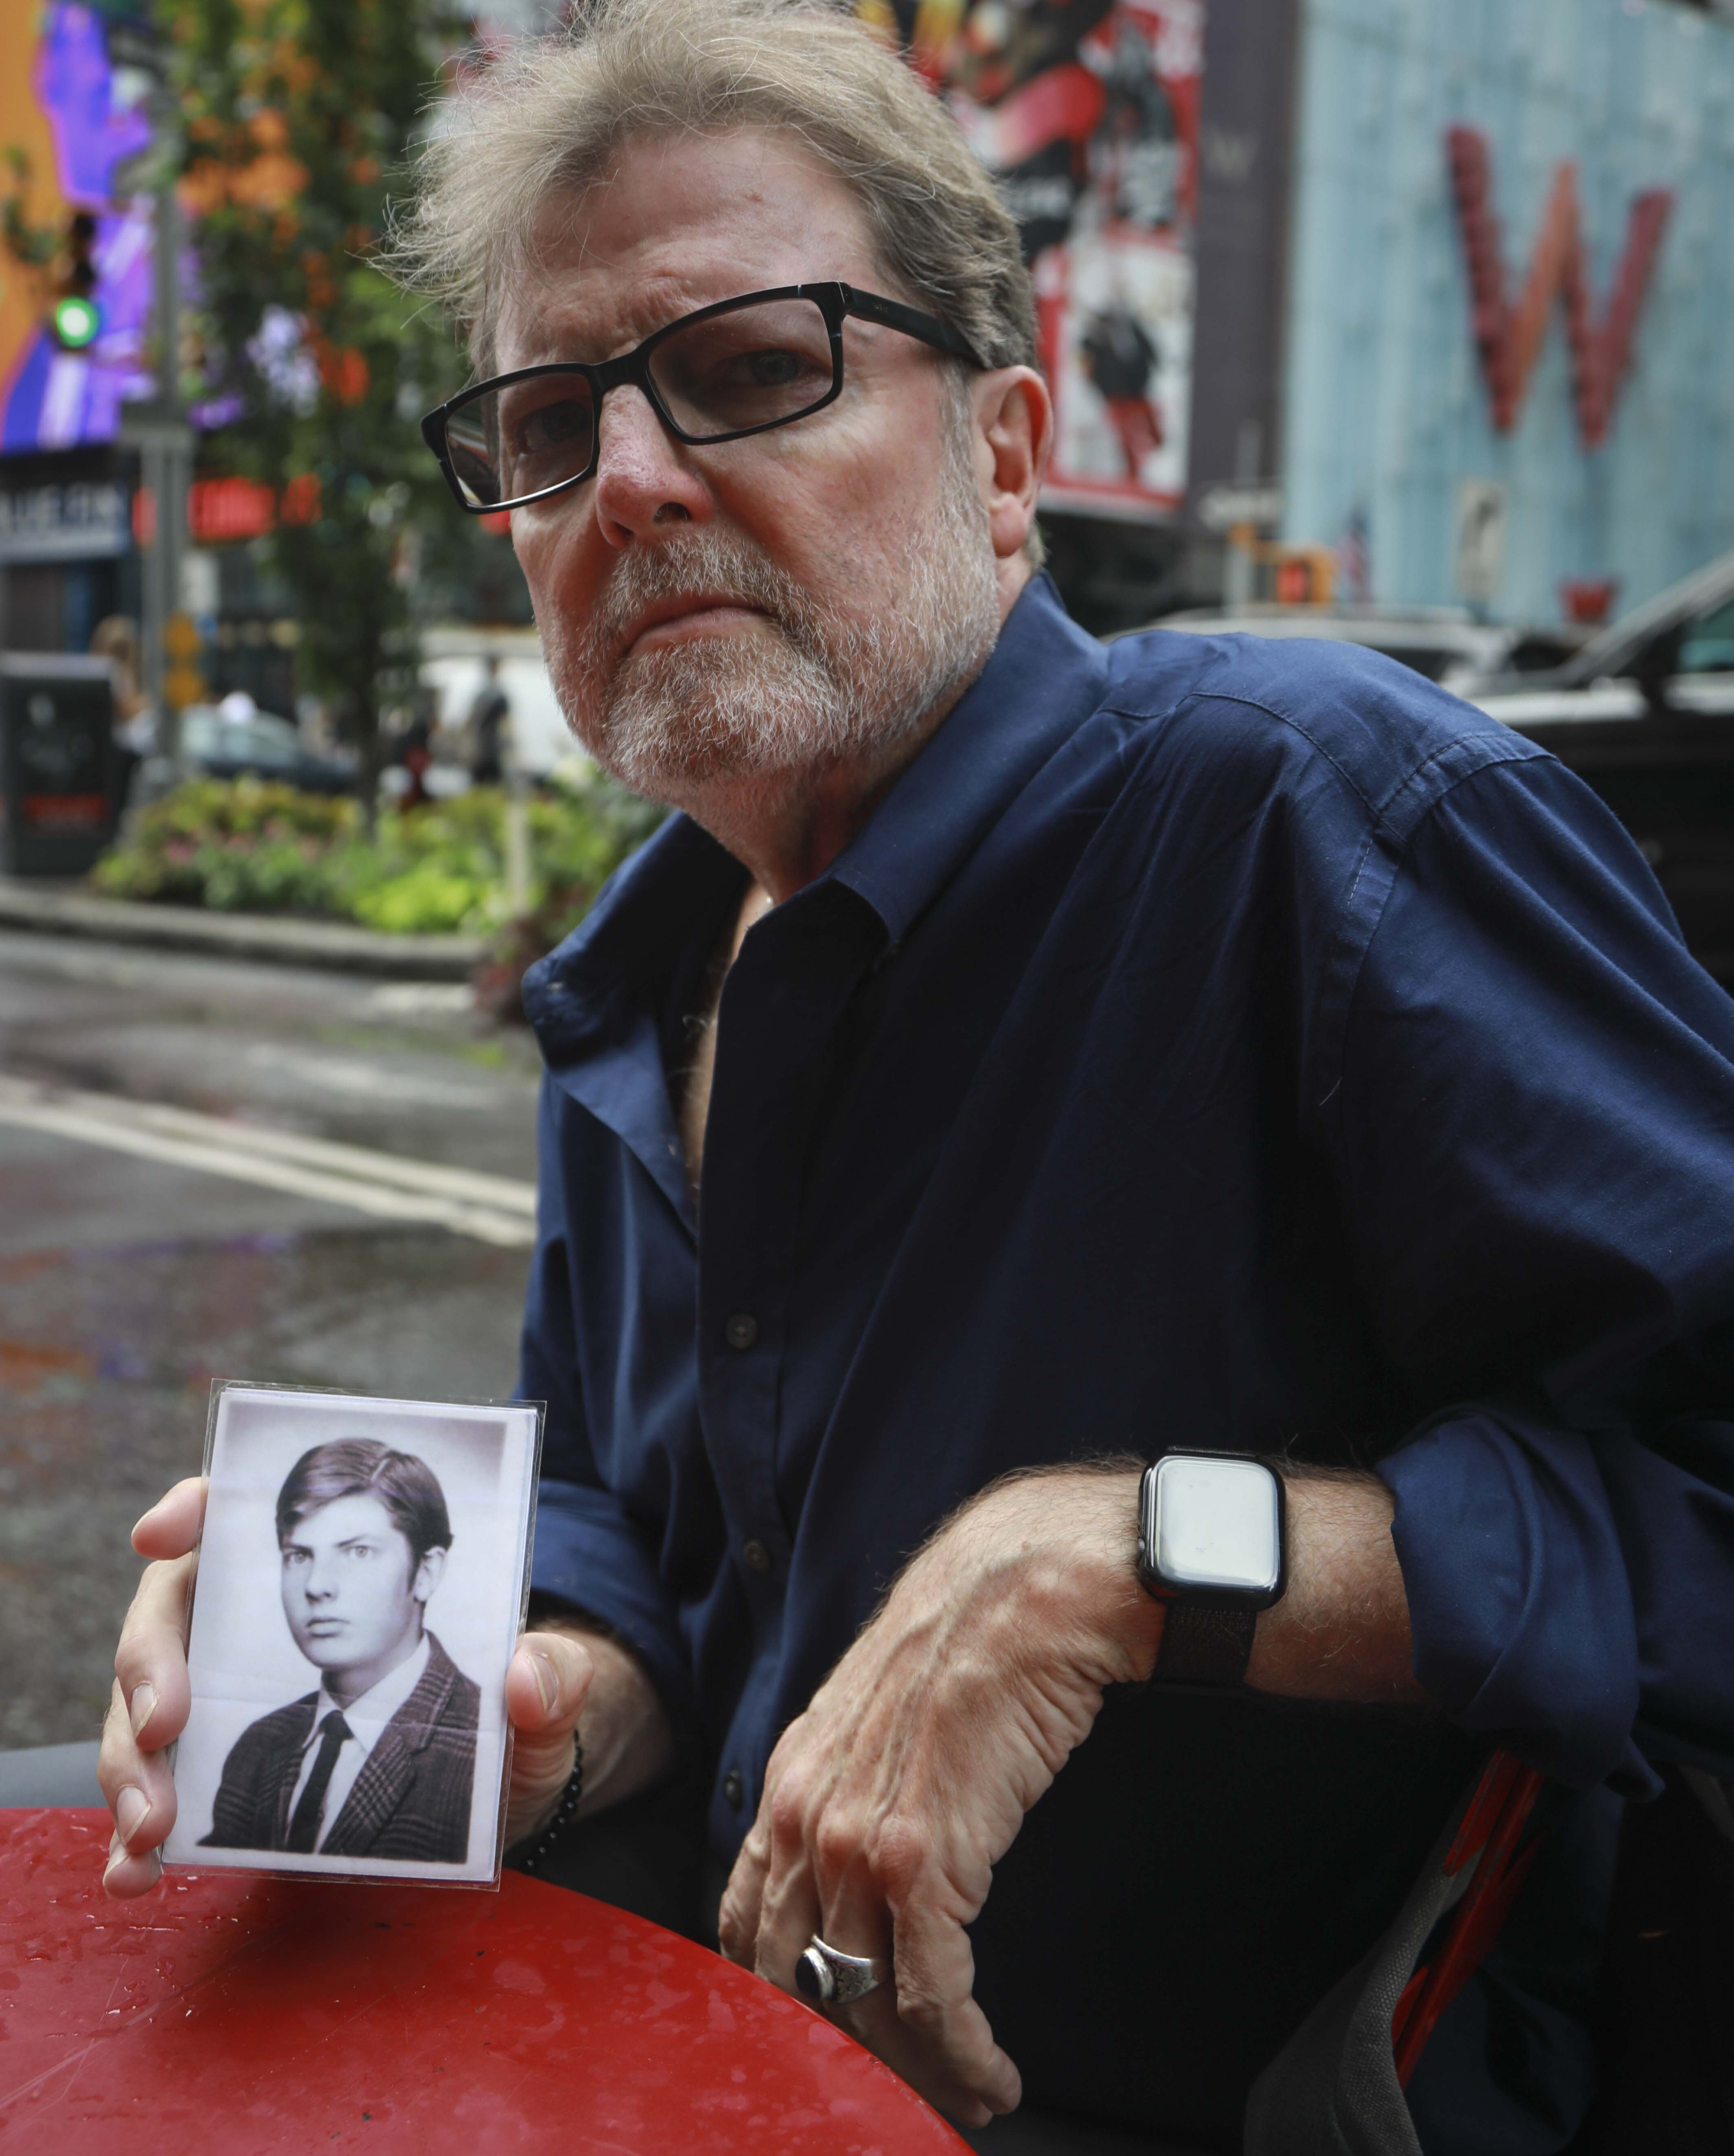 This Wednesday, Aug. 7, 2019 photo shows Brian Toale, holding a photo of himself at 16 years old in New York. Thousands of people who say they were molested as children in New York state will head to court this week to file lawsuits against their alleged abusers and the institutions where they worked. Toale, 66, who says he was molested by an employee at a Catholic high school he attended on Long Island, was one of the leaders in the fight to pass the Child Victims Act. (AP Photo/Bebeto Matthews)